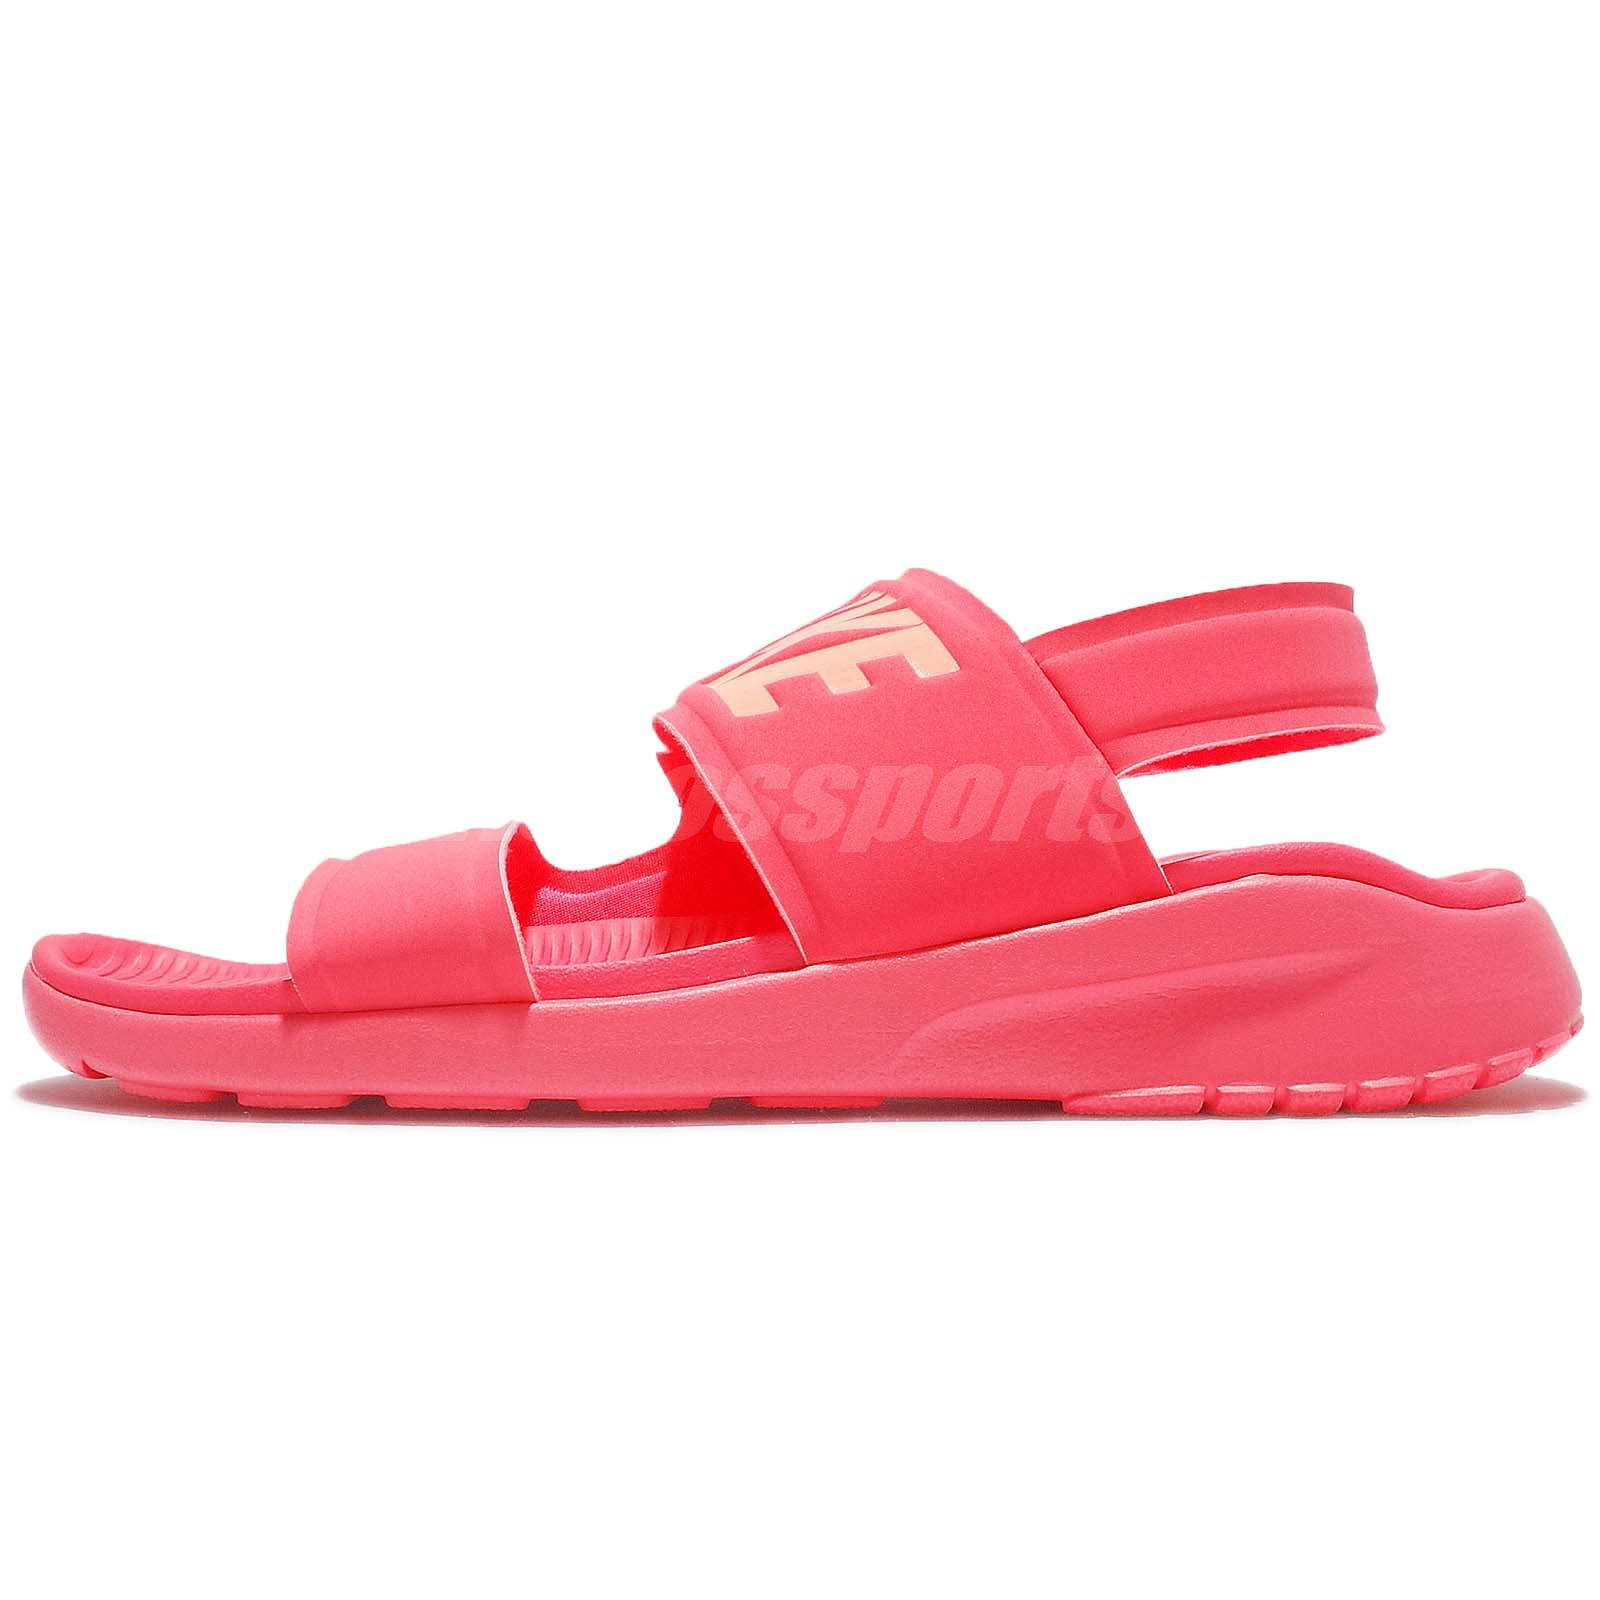 Nike Wmns Tanjun Sandal Racer Pink Women Slip On Shoes Flip Flops 882694-600 894595f2f